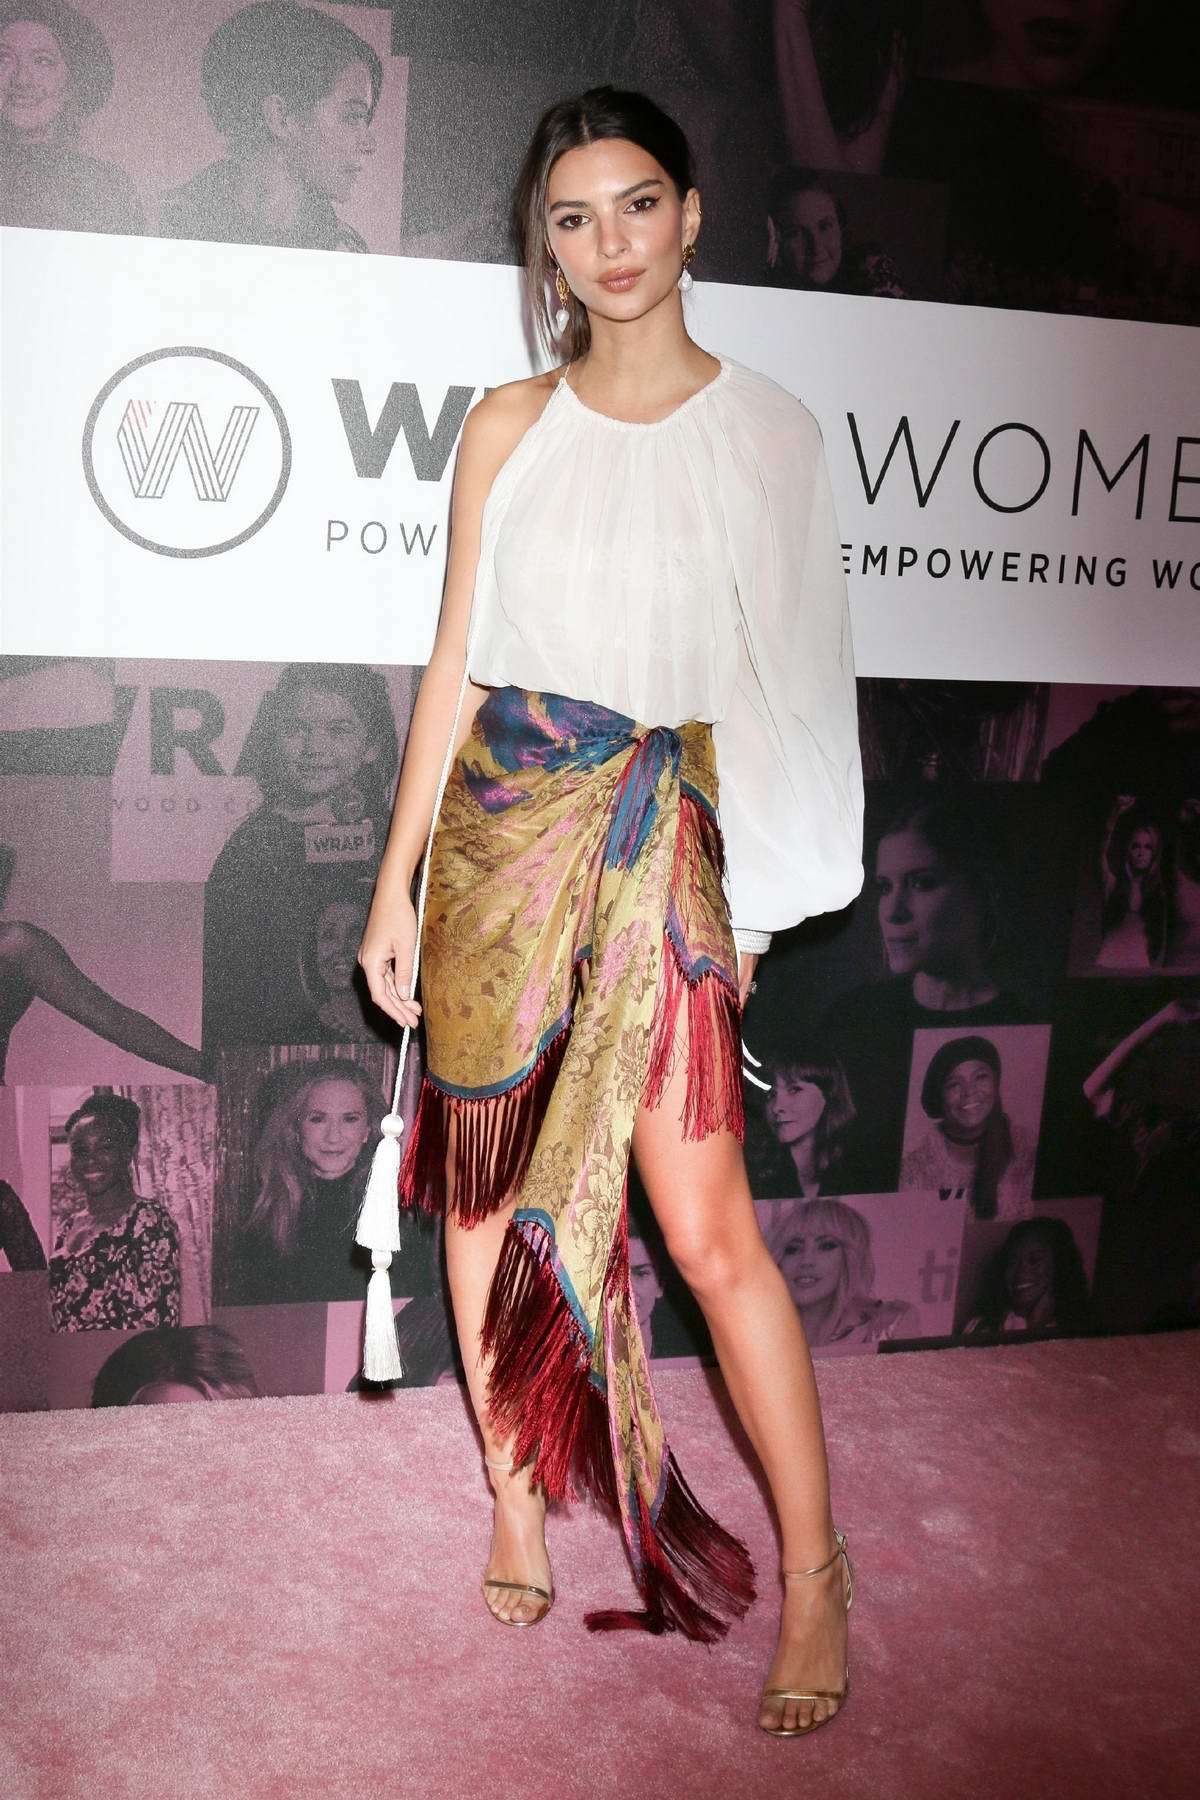 Emily Ratajkowski attends the WrapWomen's Power Women Summit at the InterContinental Hotel in Los Angeles